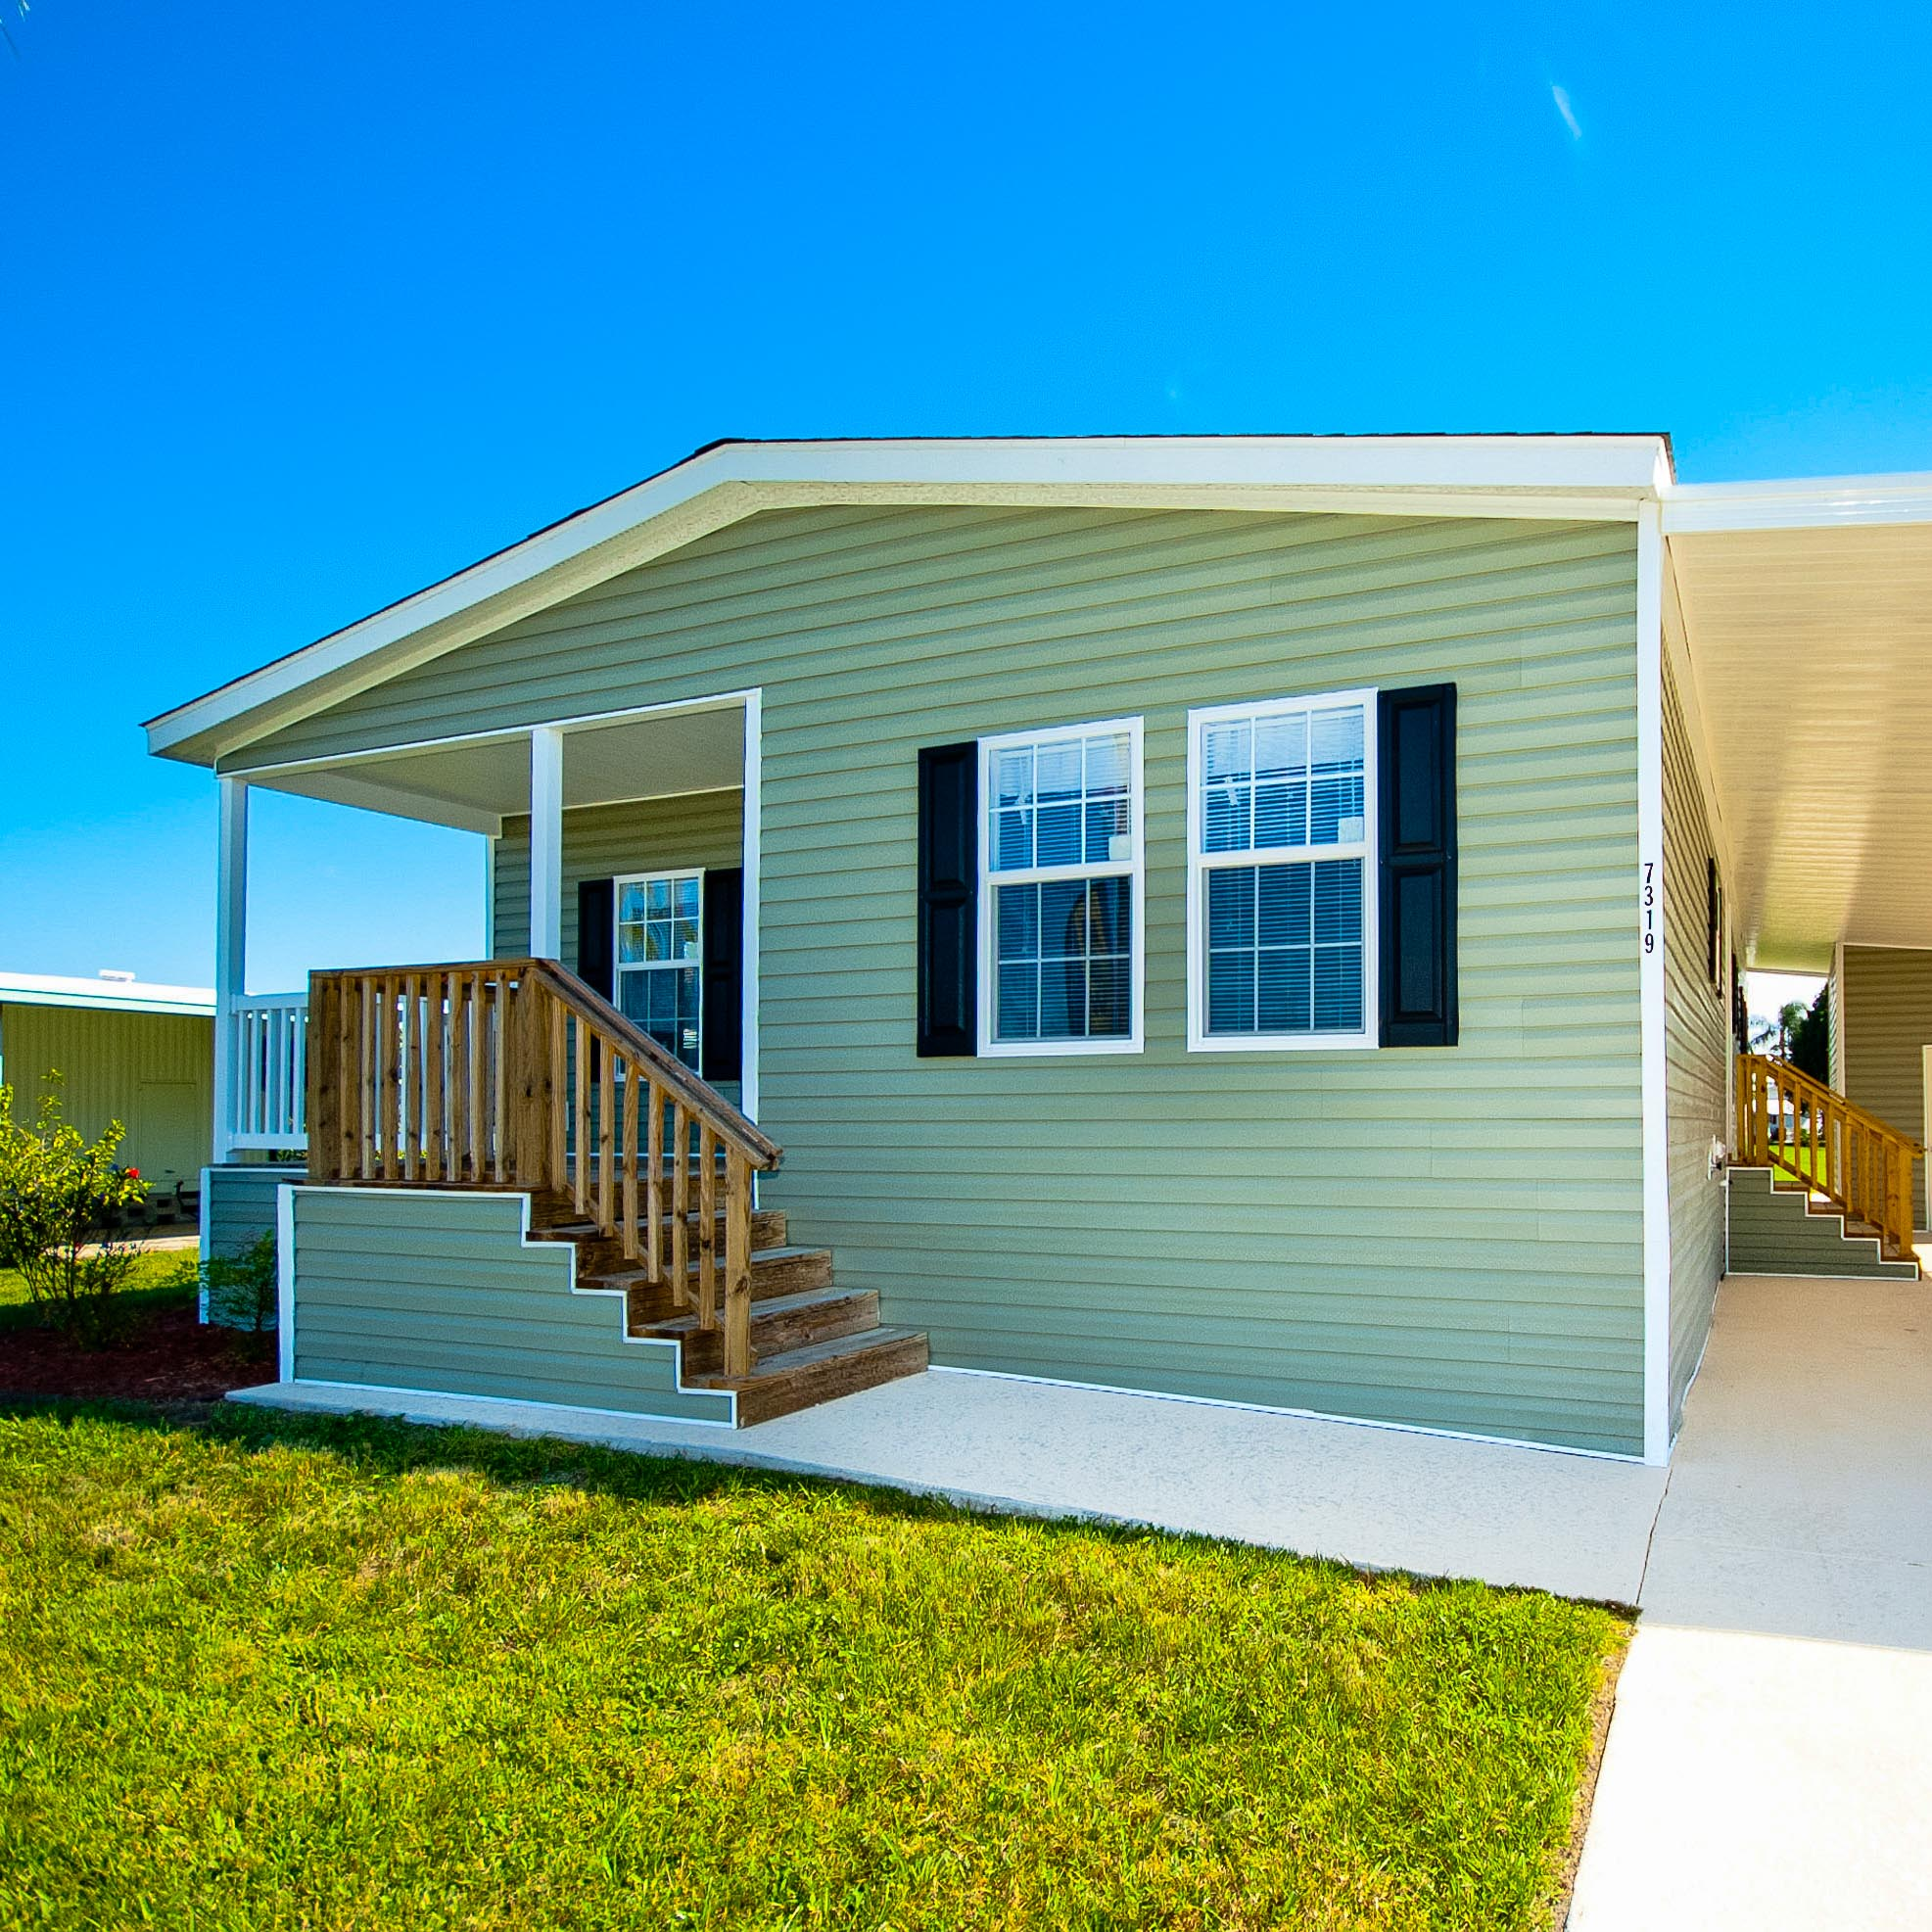 Top 5 Tips for Renting a Mobile Home